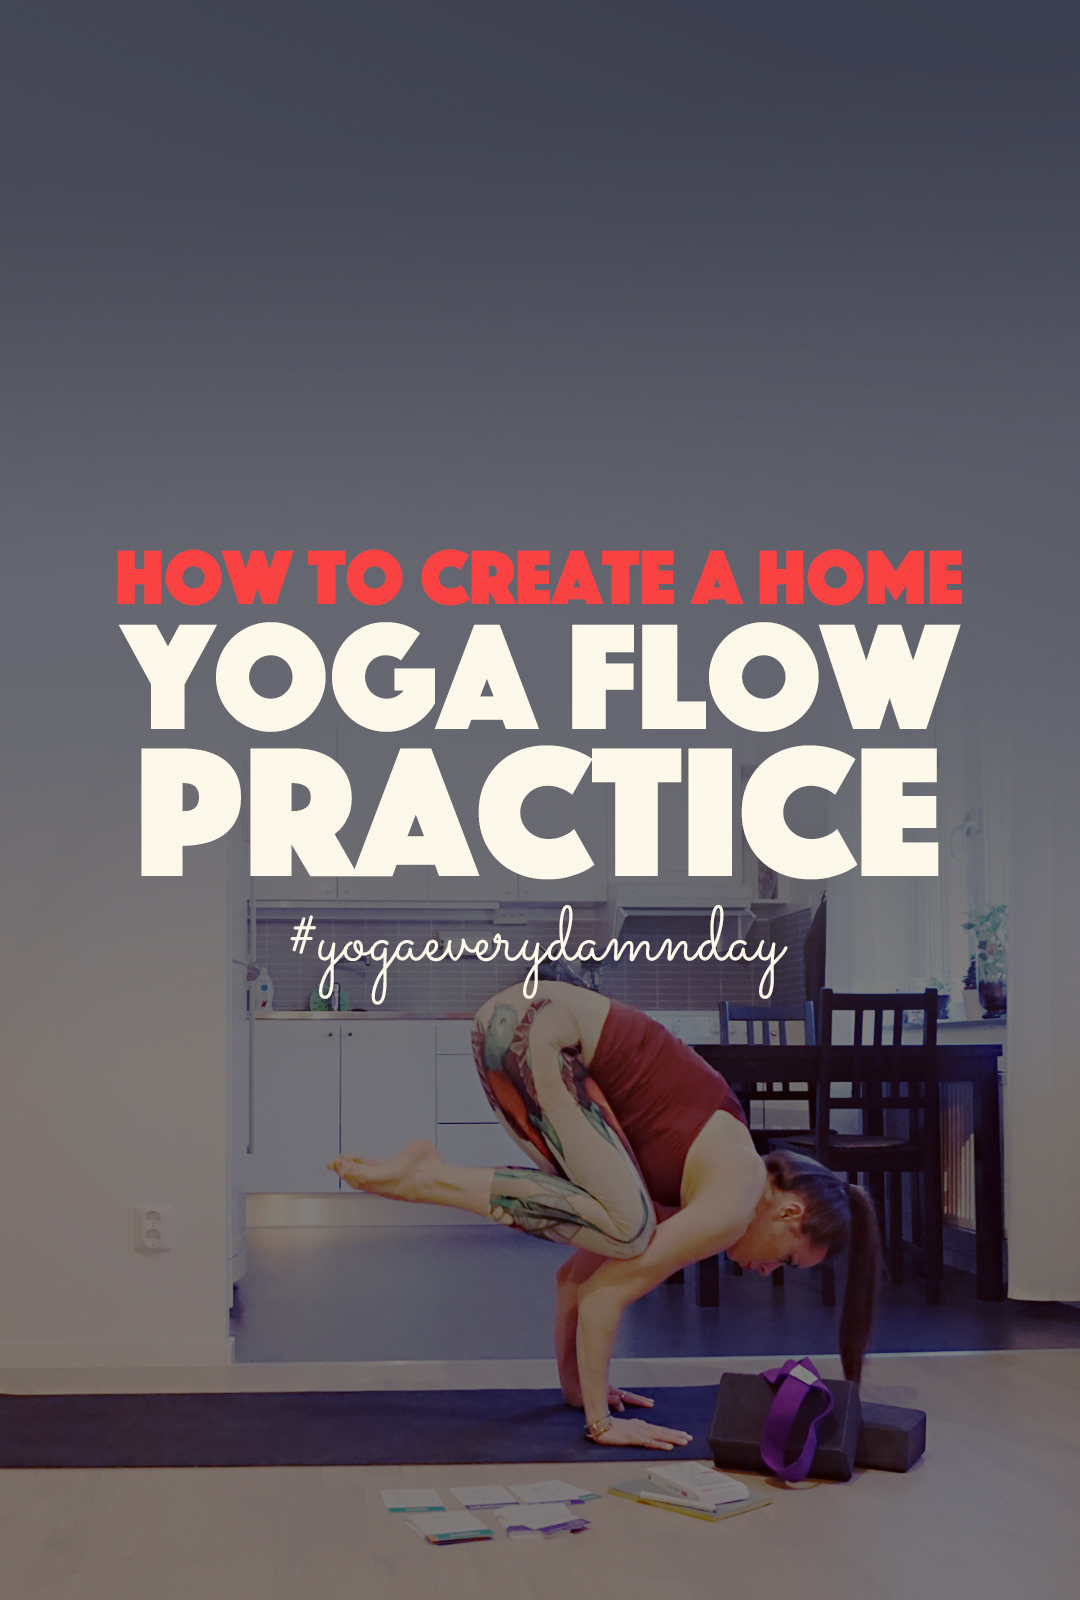 How to Create an At Home Yoga Flow Practice | http://BananaBloom.com #yogaflow #athomeyoga #yogapractice #yoga